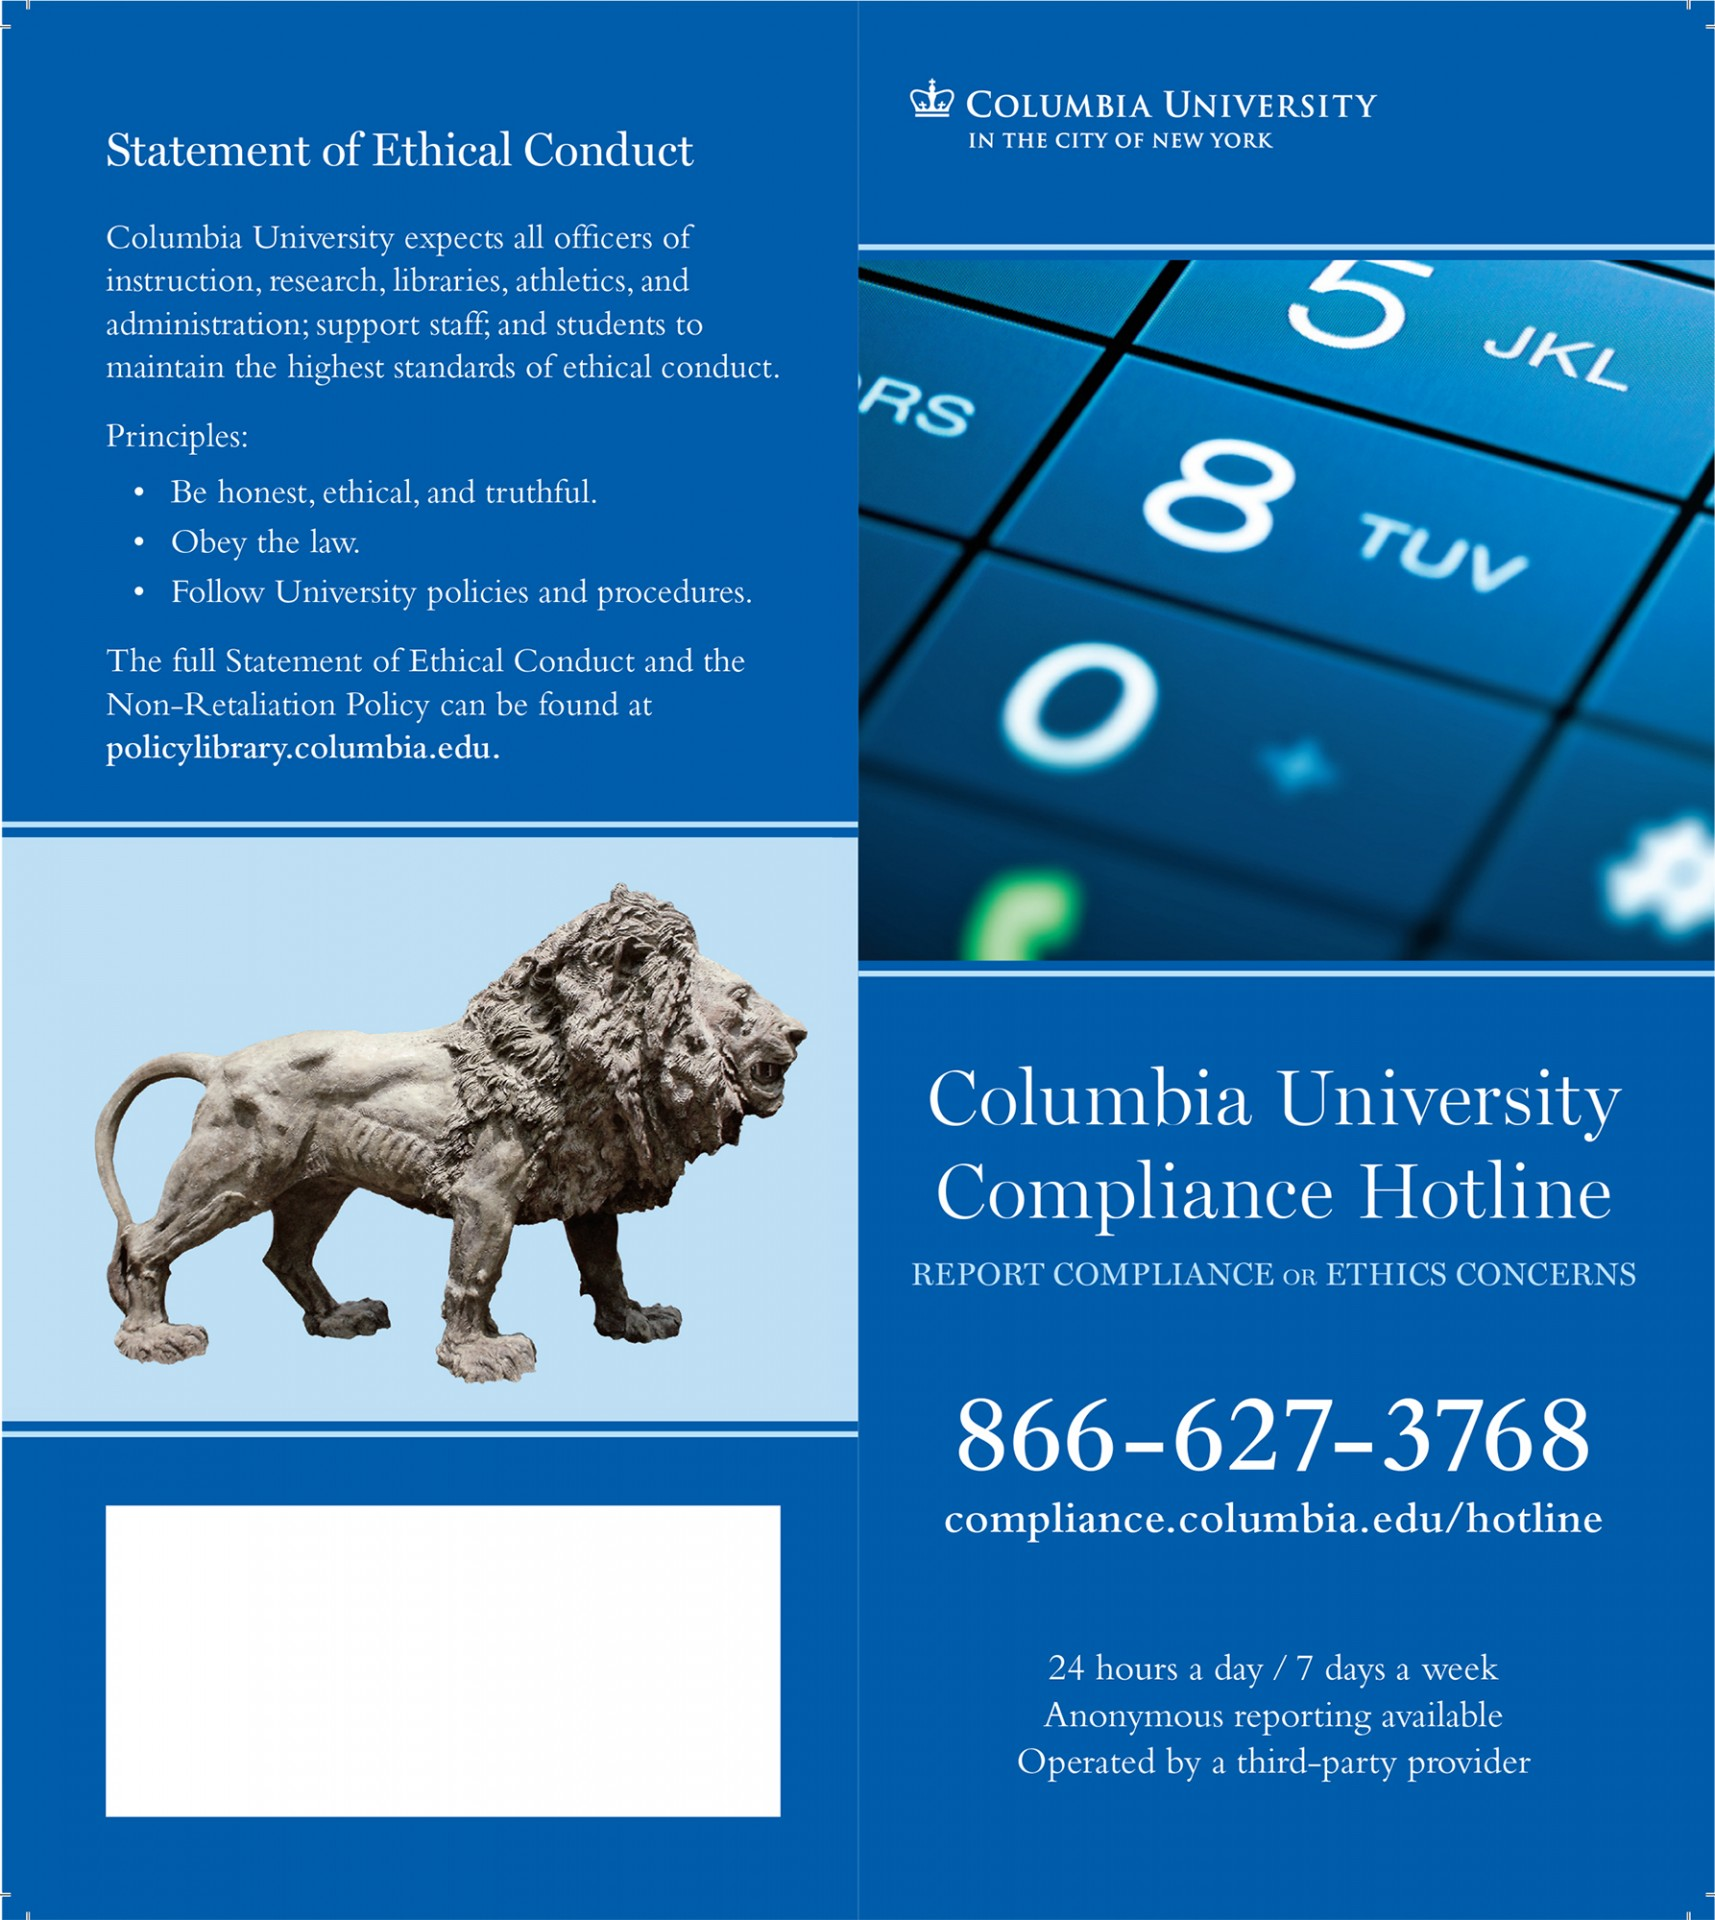 image of compliance brochure